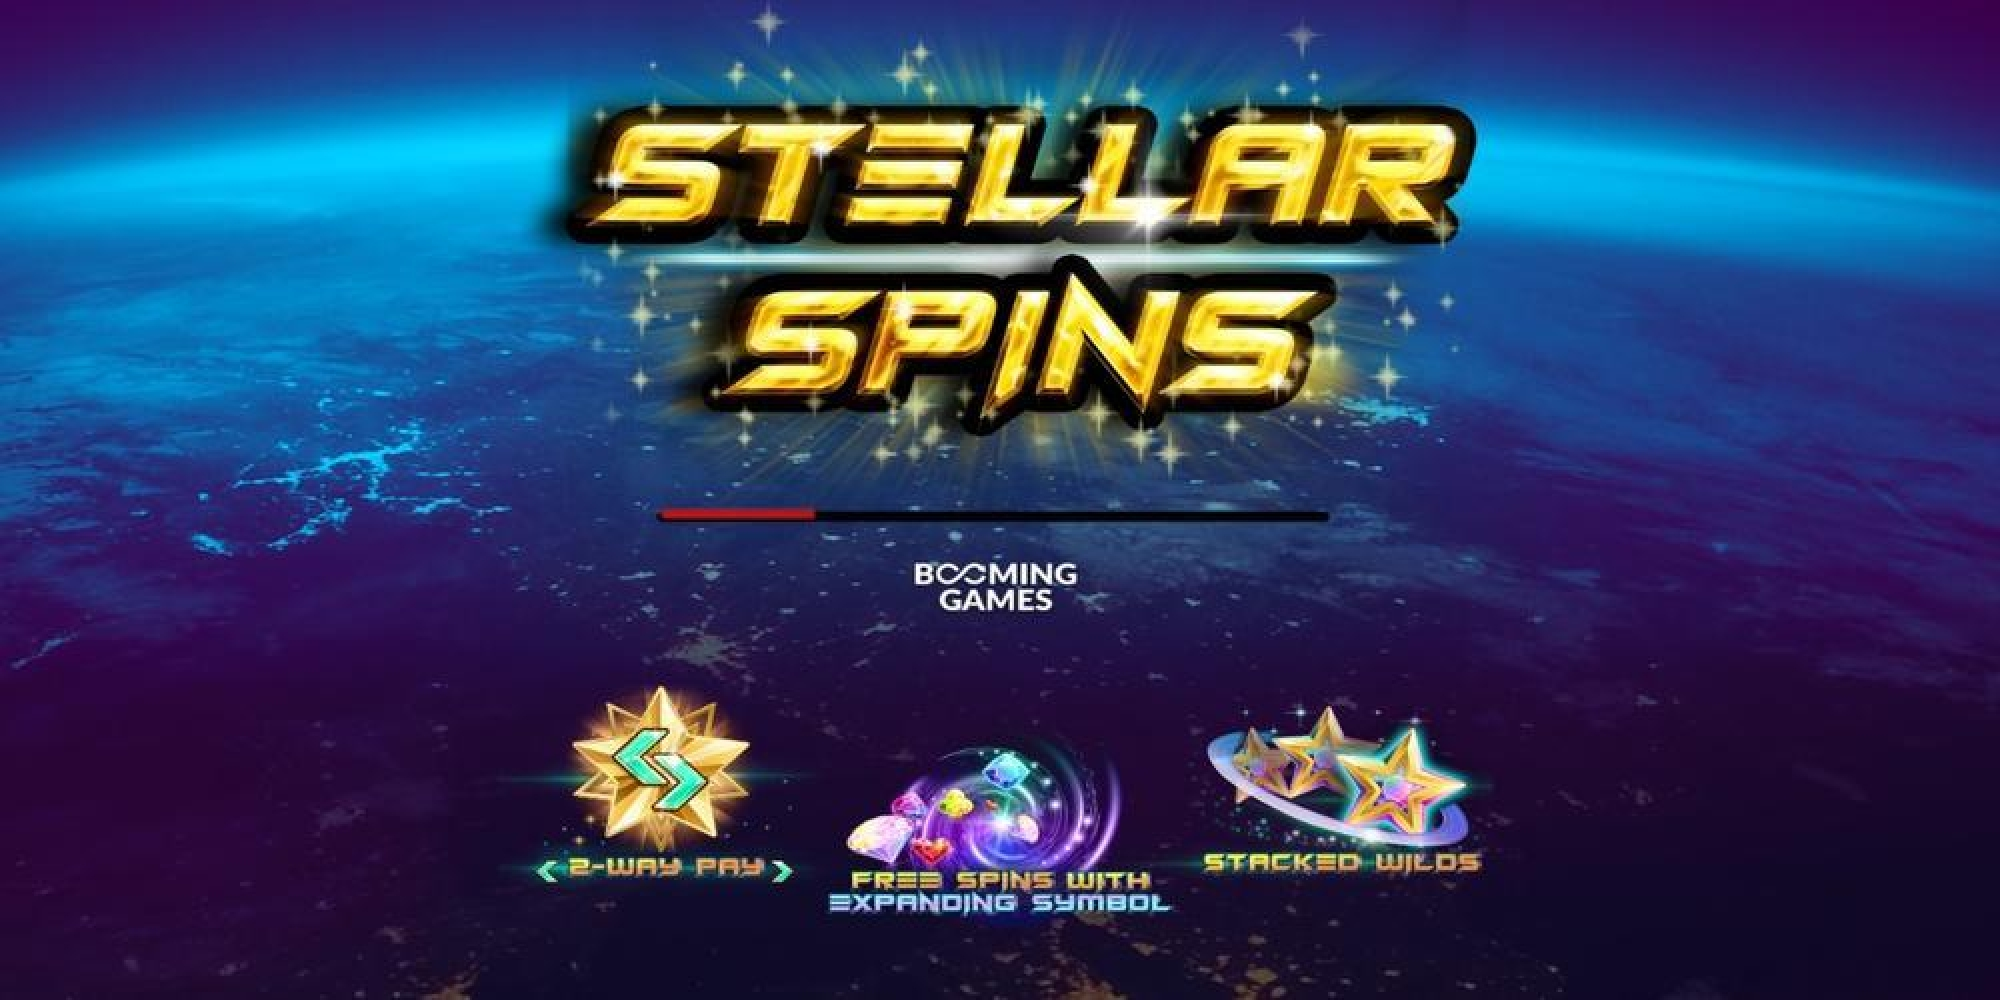 The Stellar Spins Online Slot Demo Game by Booming Games